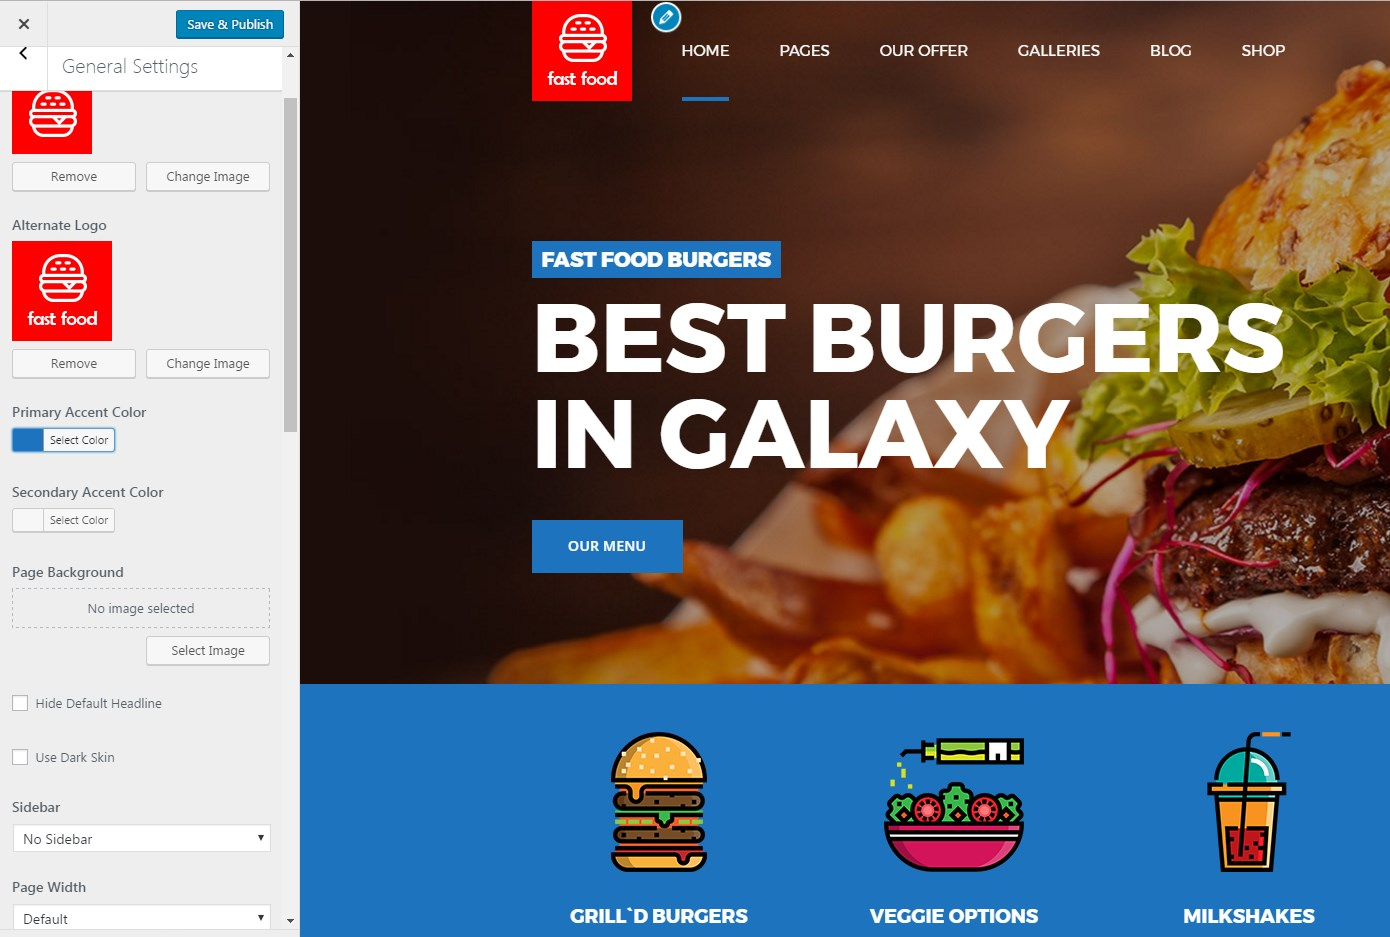 http://documentation.bold-themes.com/fast-food/wp-content/uploads/sites/13/2016/07/13-1-1.jpg